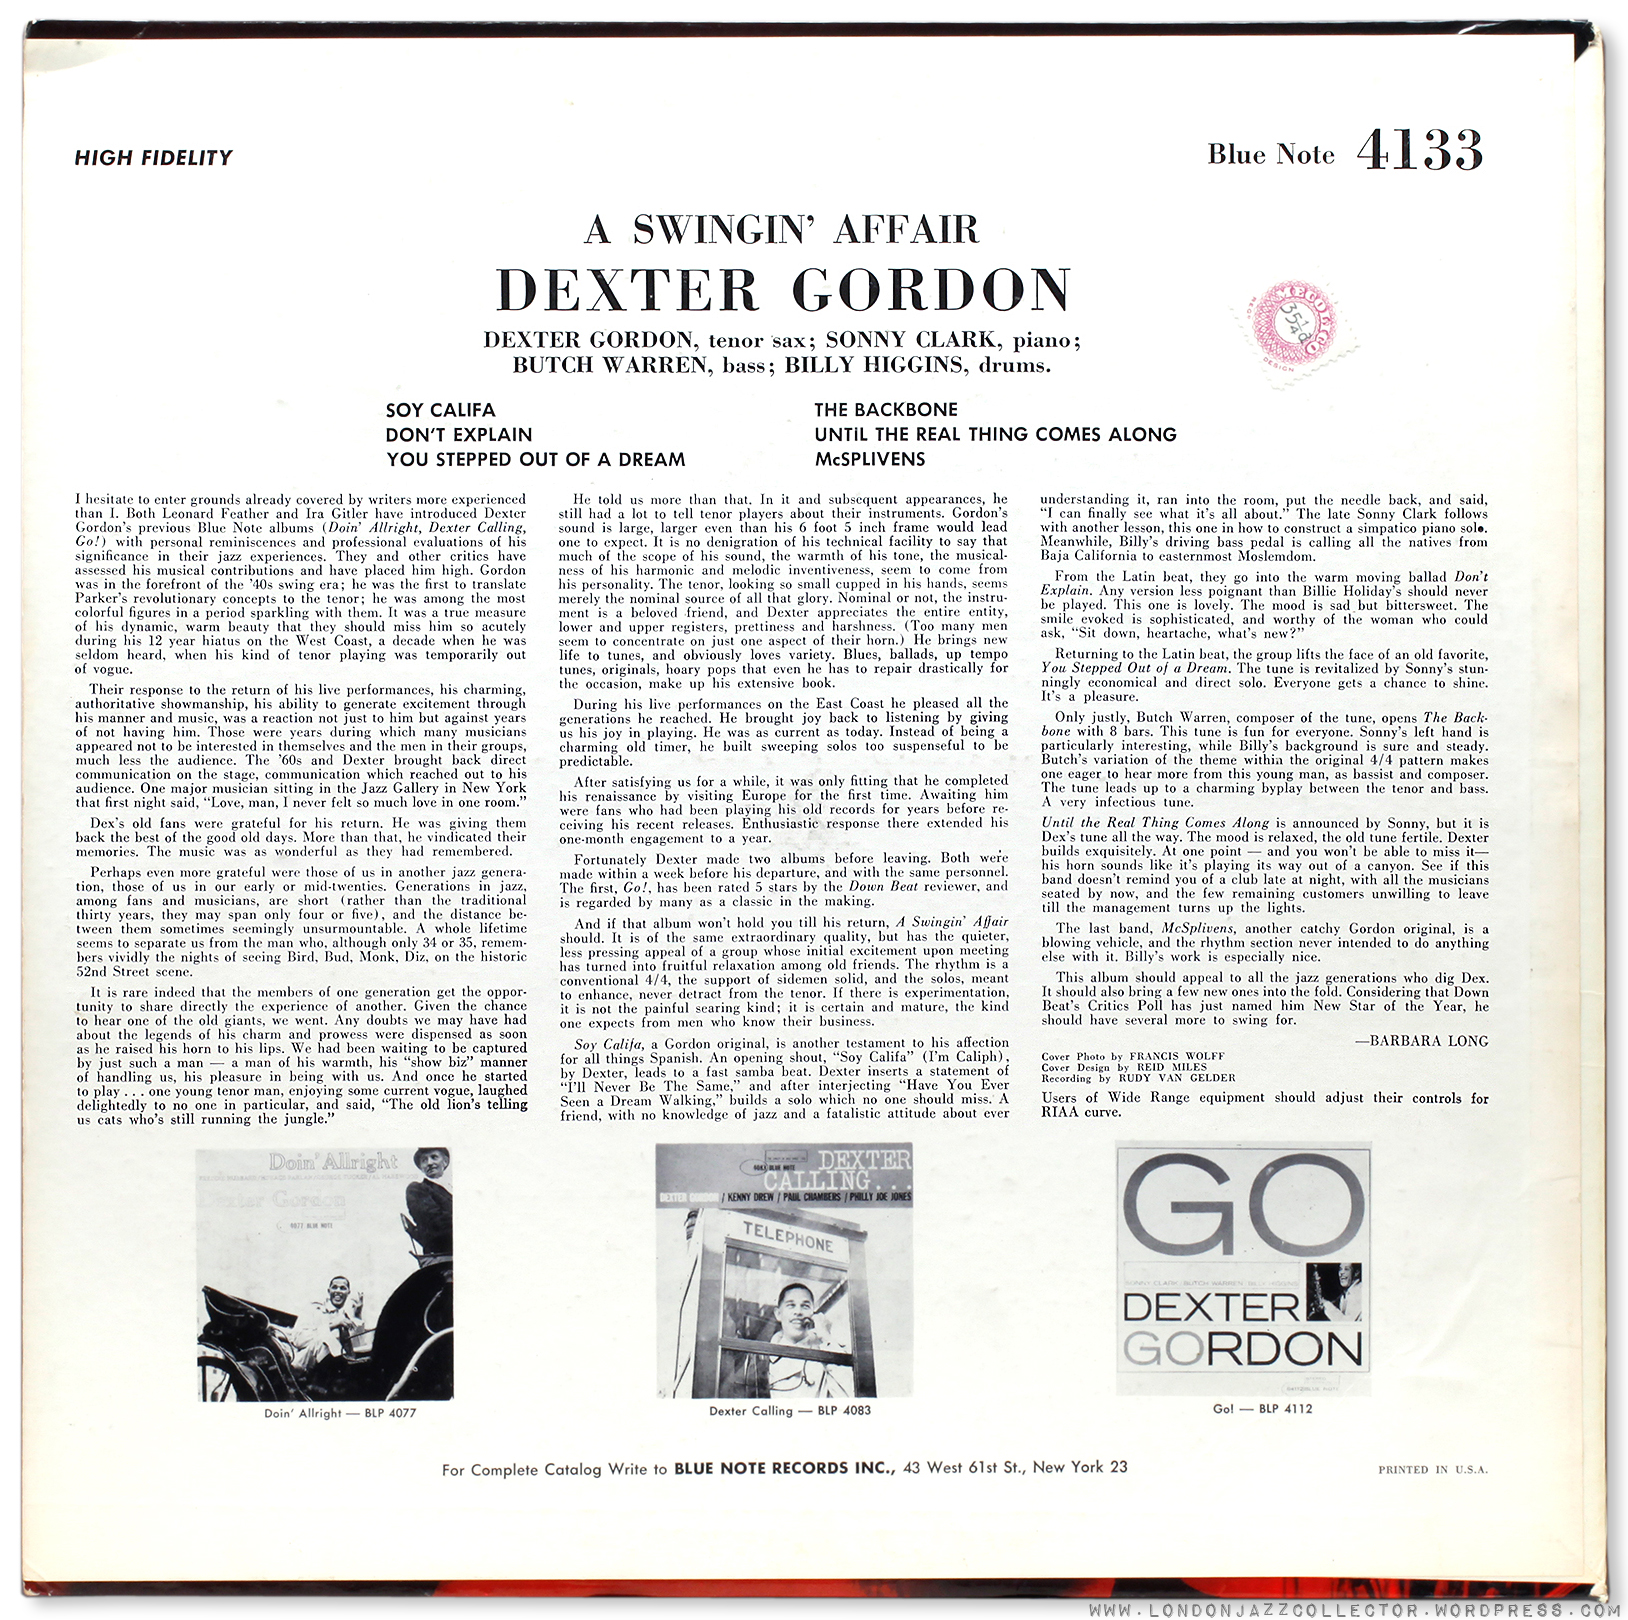 Dexter Gordon A Swinging Affair 1962 Londonjazzcollector